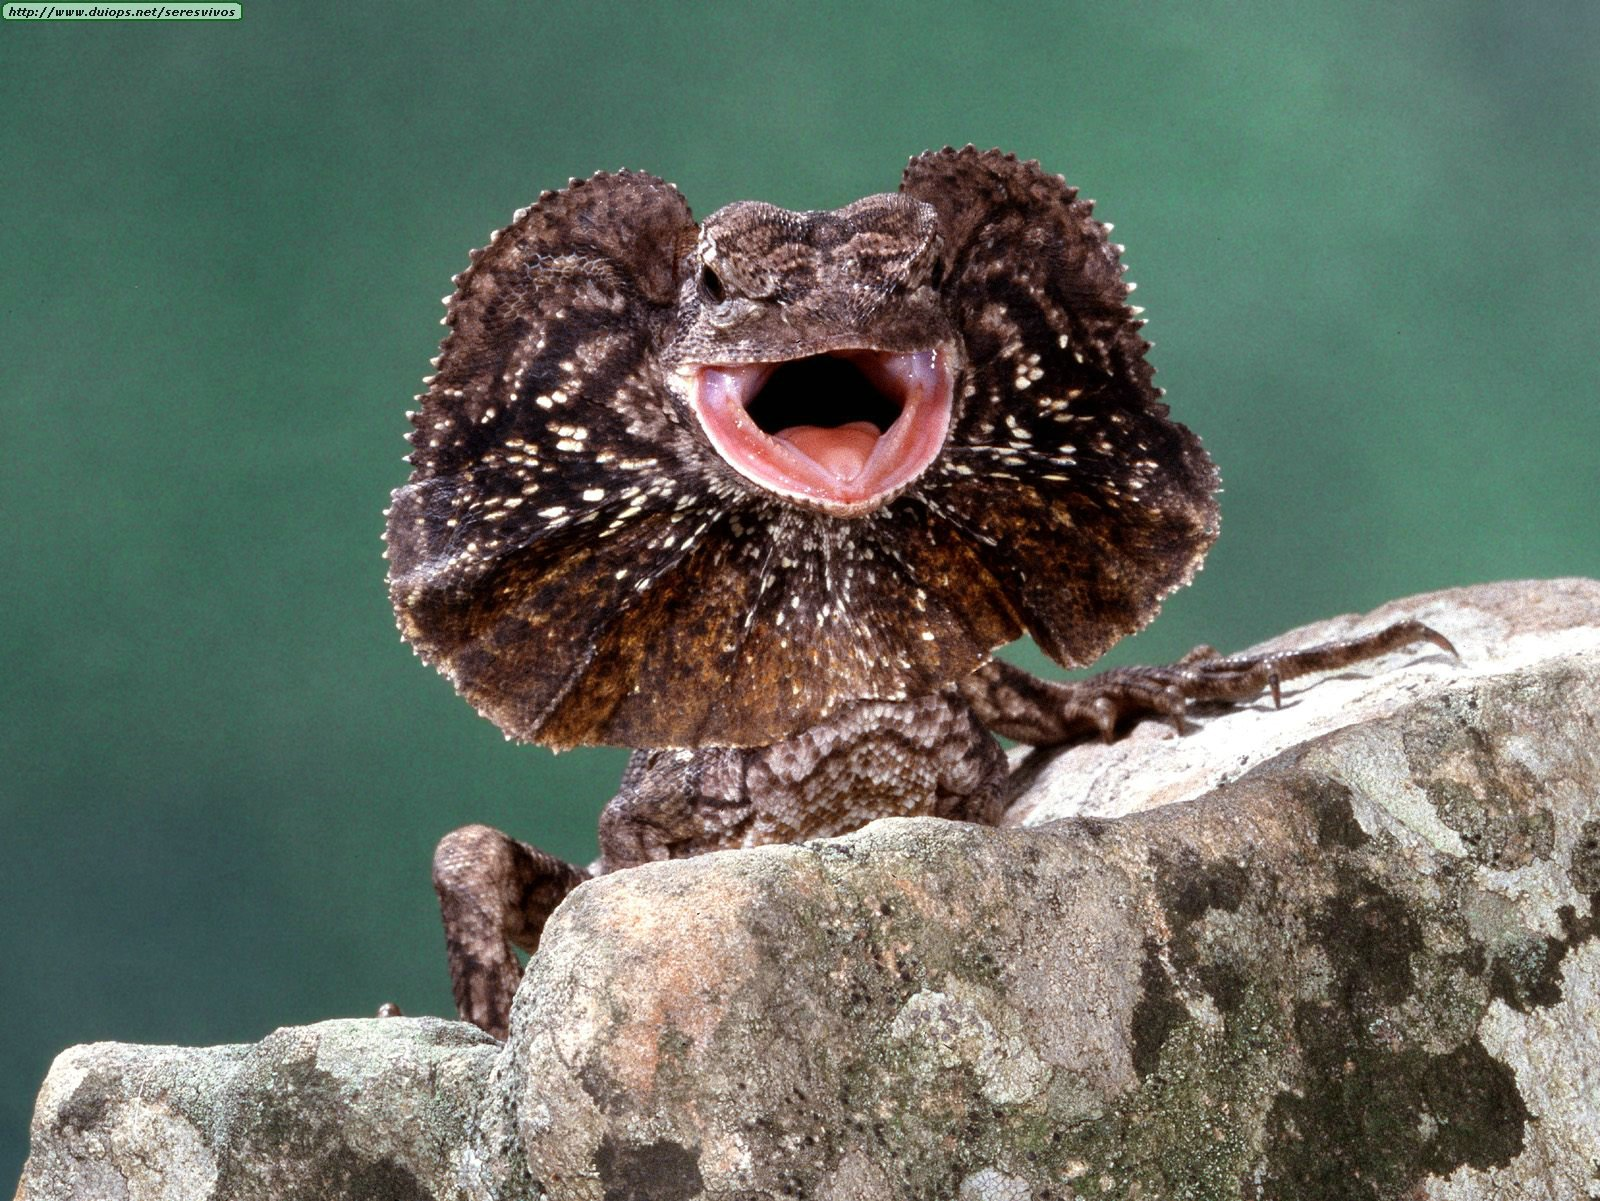 Animals%20Reptiles_Frilled%20Lizard.jpg